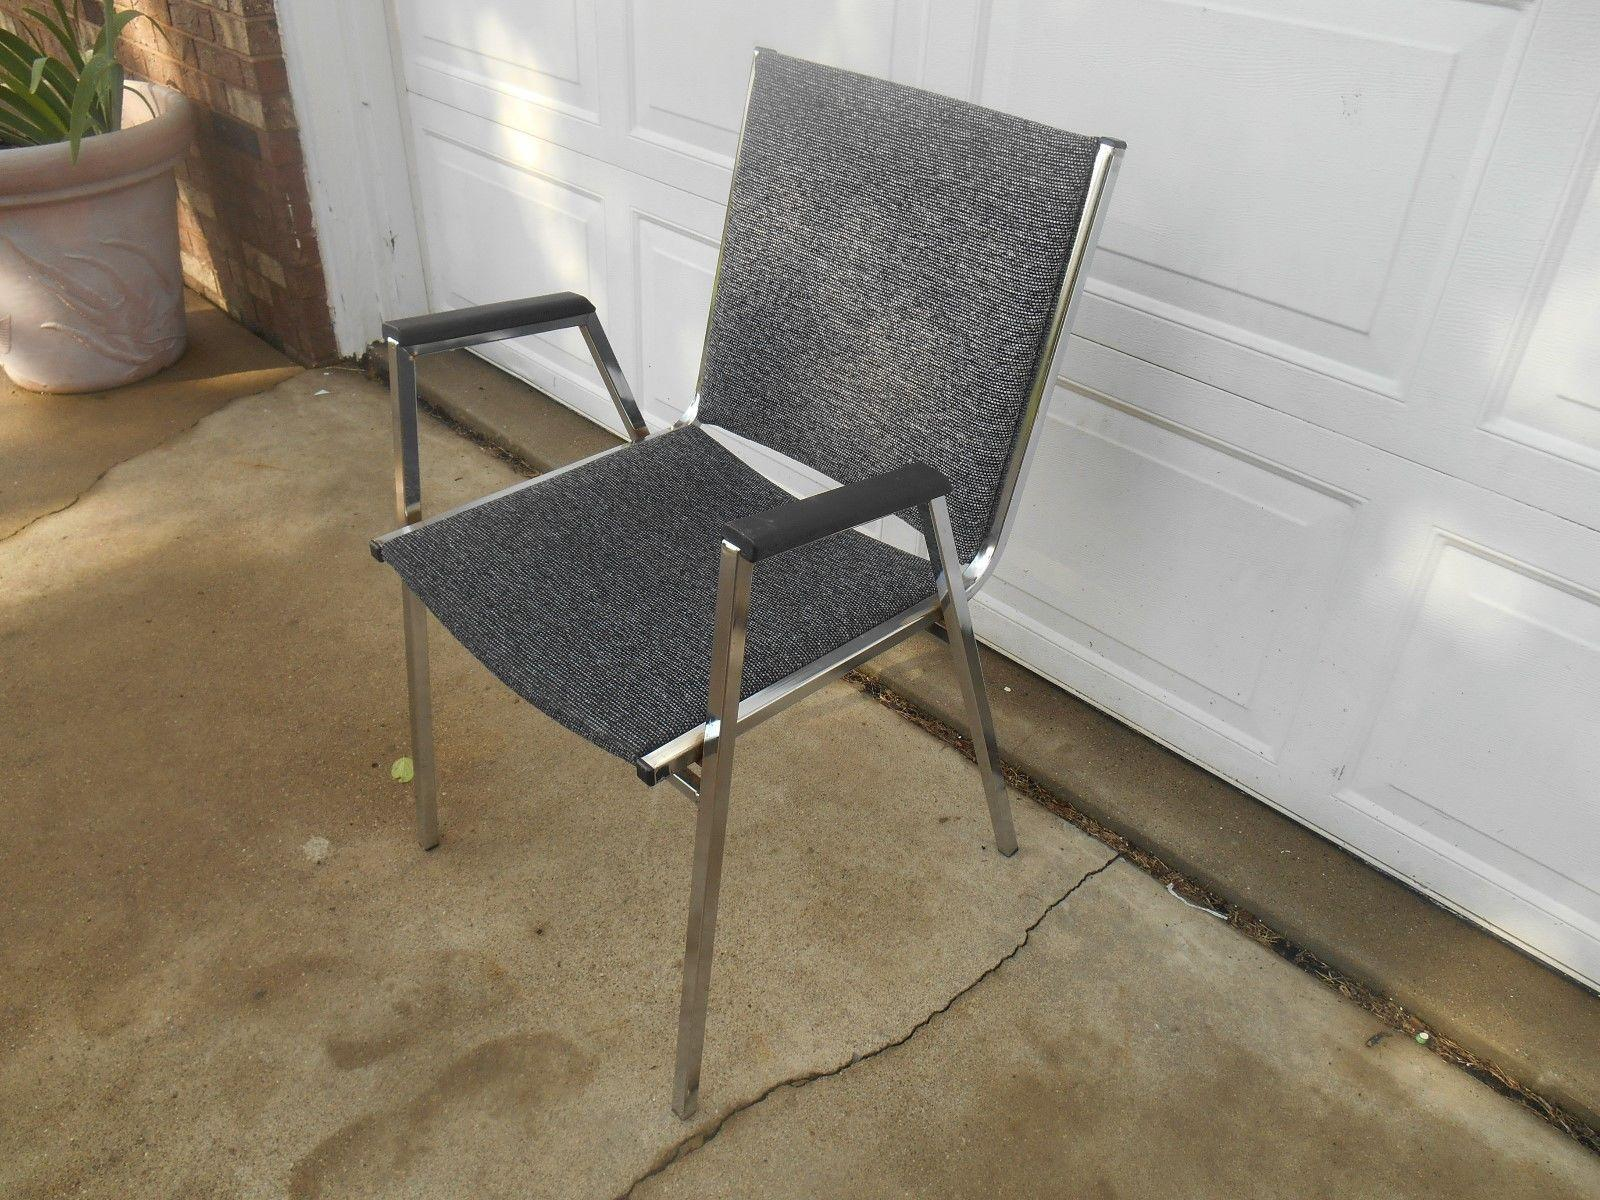 flair design furniture. flair design midcentury office chair image 5 of 6 furniture